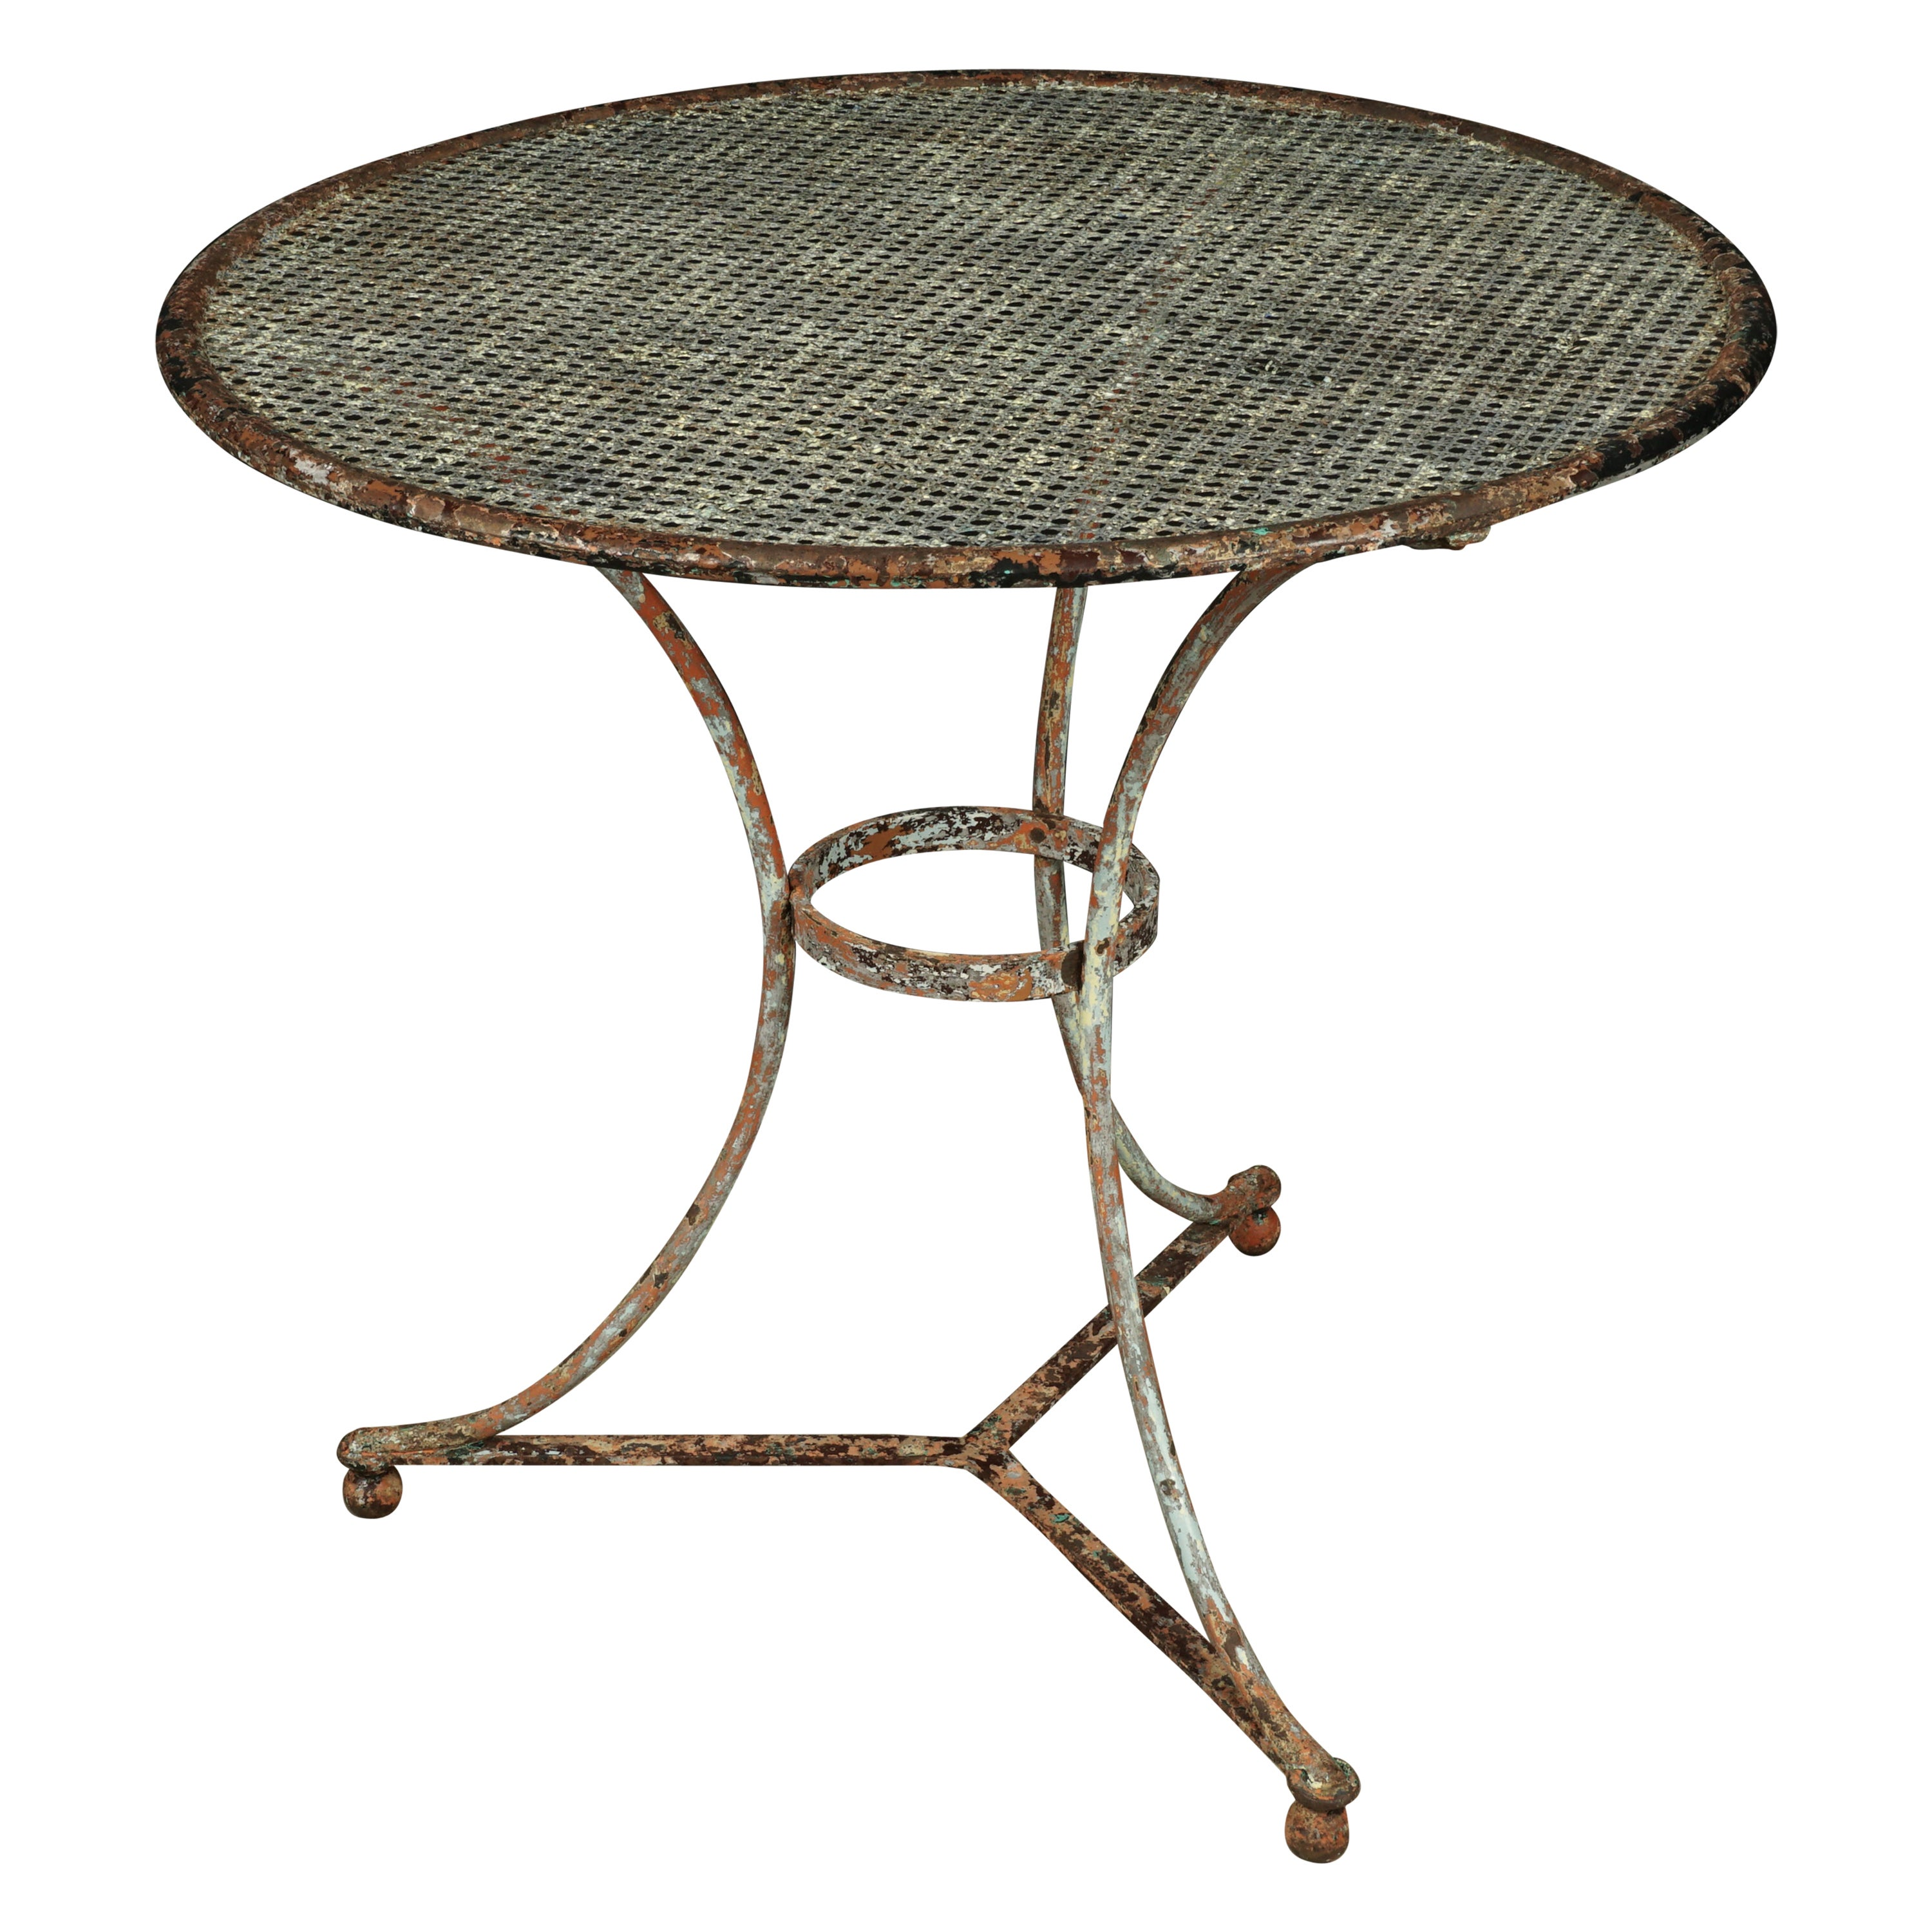 Vintage Bistro Table from France, 1950s